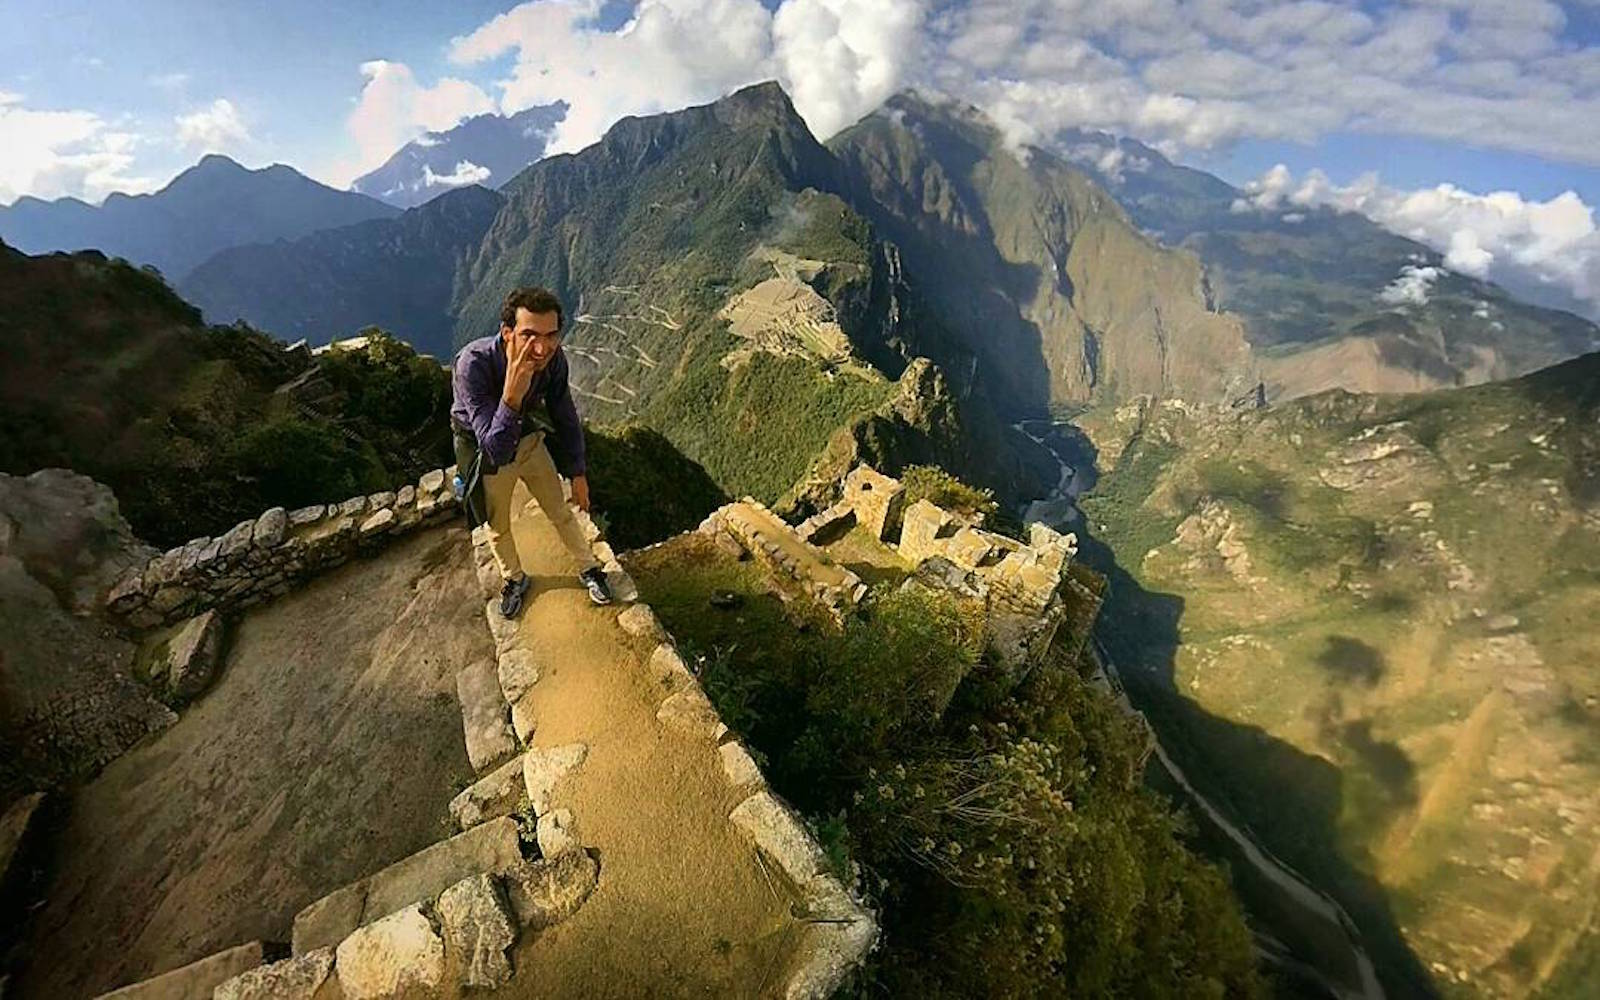 360-degree Photography Is Changing the Future of Travel